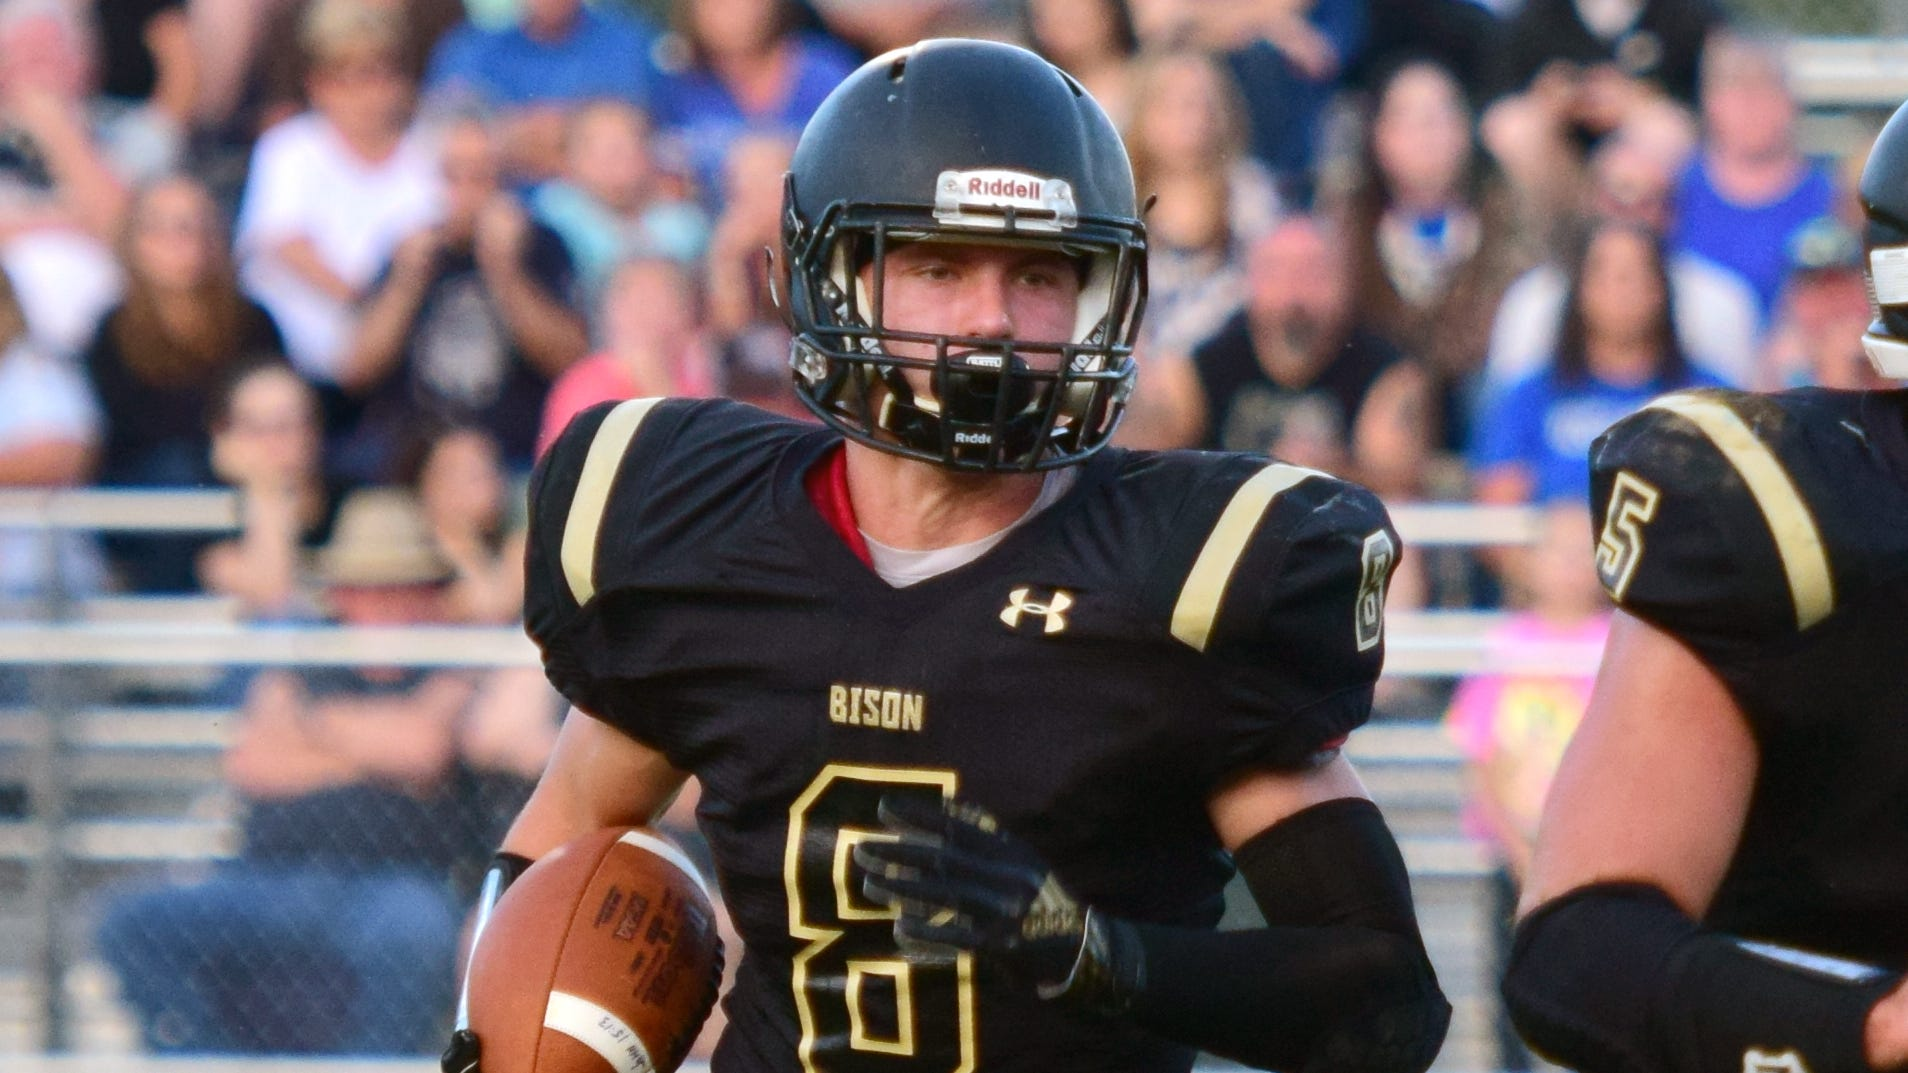 Buffalo Gap's Carter Rivenburg, left, was voted Huddle Player of the Week for the fourth time this season after his Week 8 performance against East Rockingham.